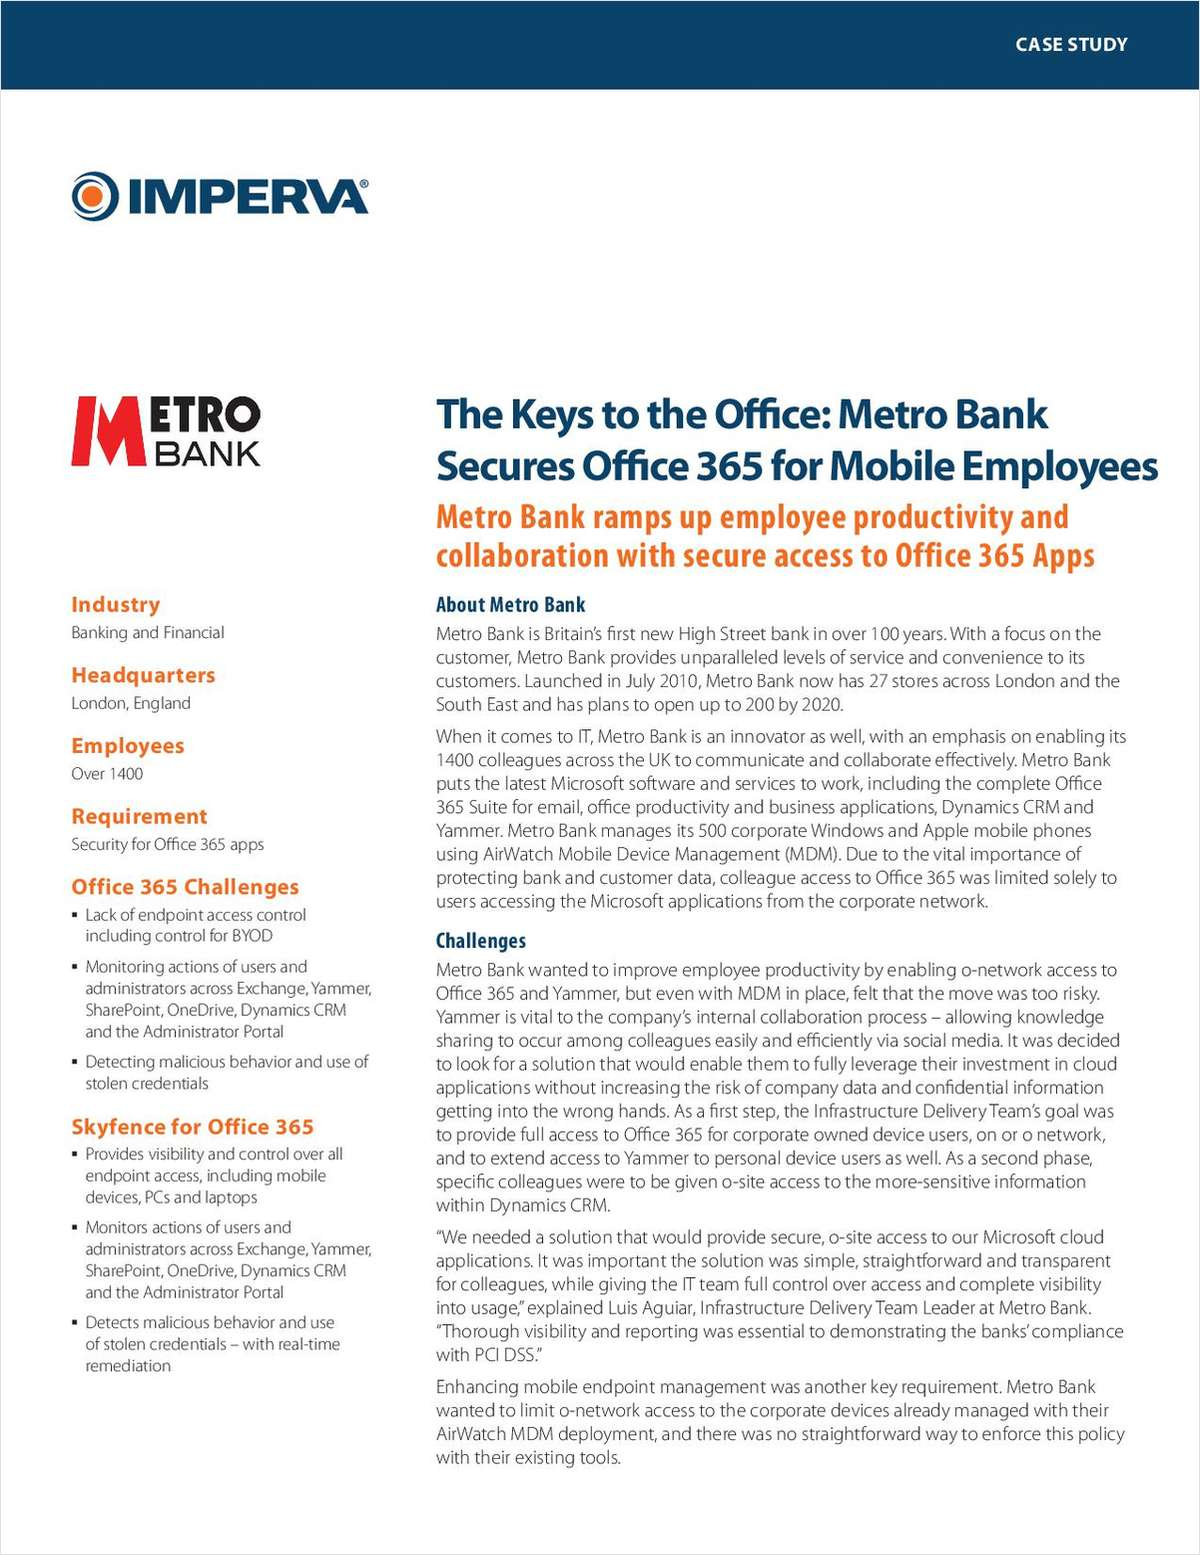 The Keys to the Office: Metro Bank Secures Office 365 for Mobile Employees